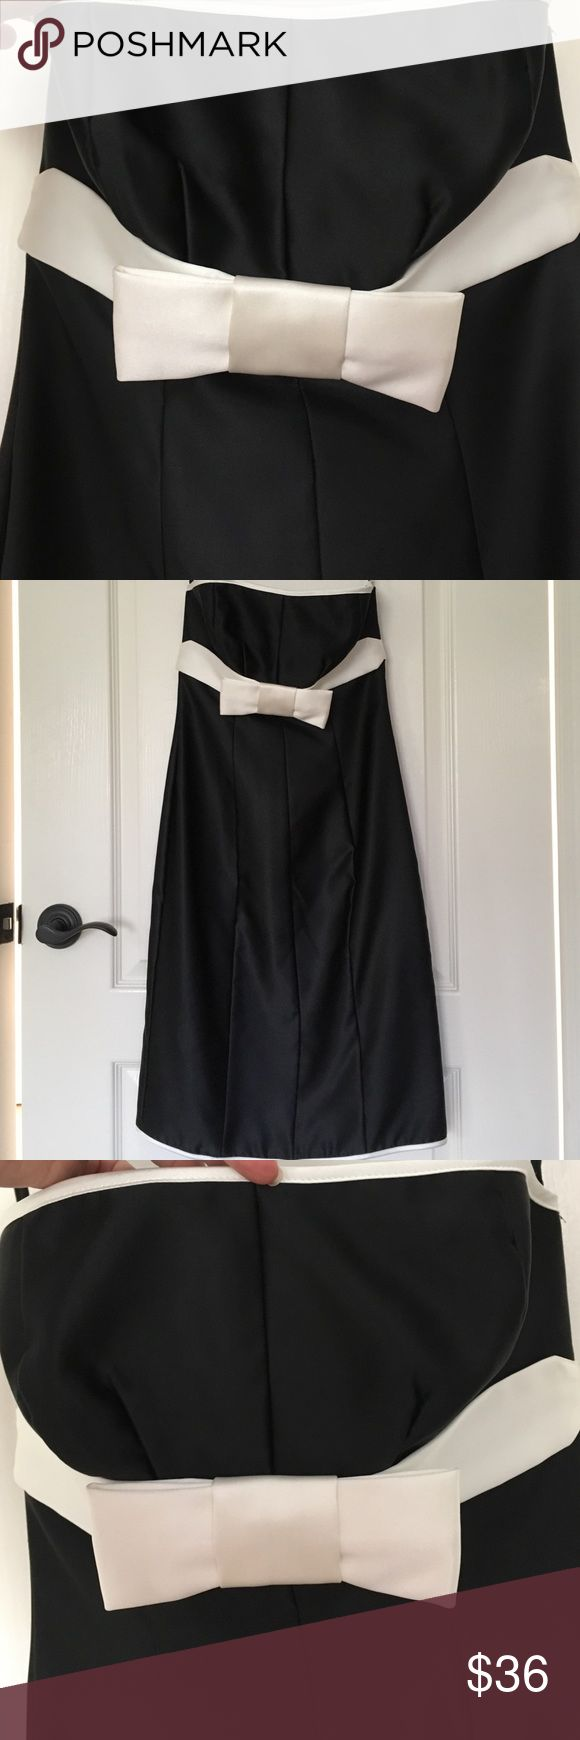 New black w/cream bow cocktail dress Tag no longer attached. Never worn Dresses Strapless